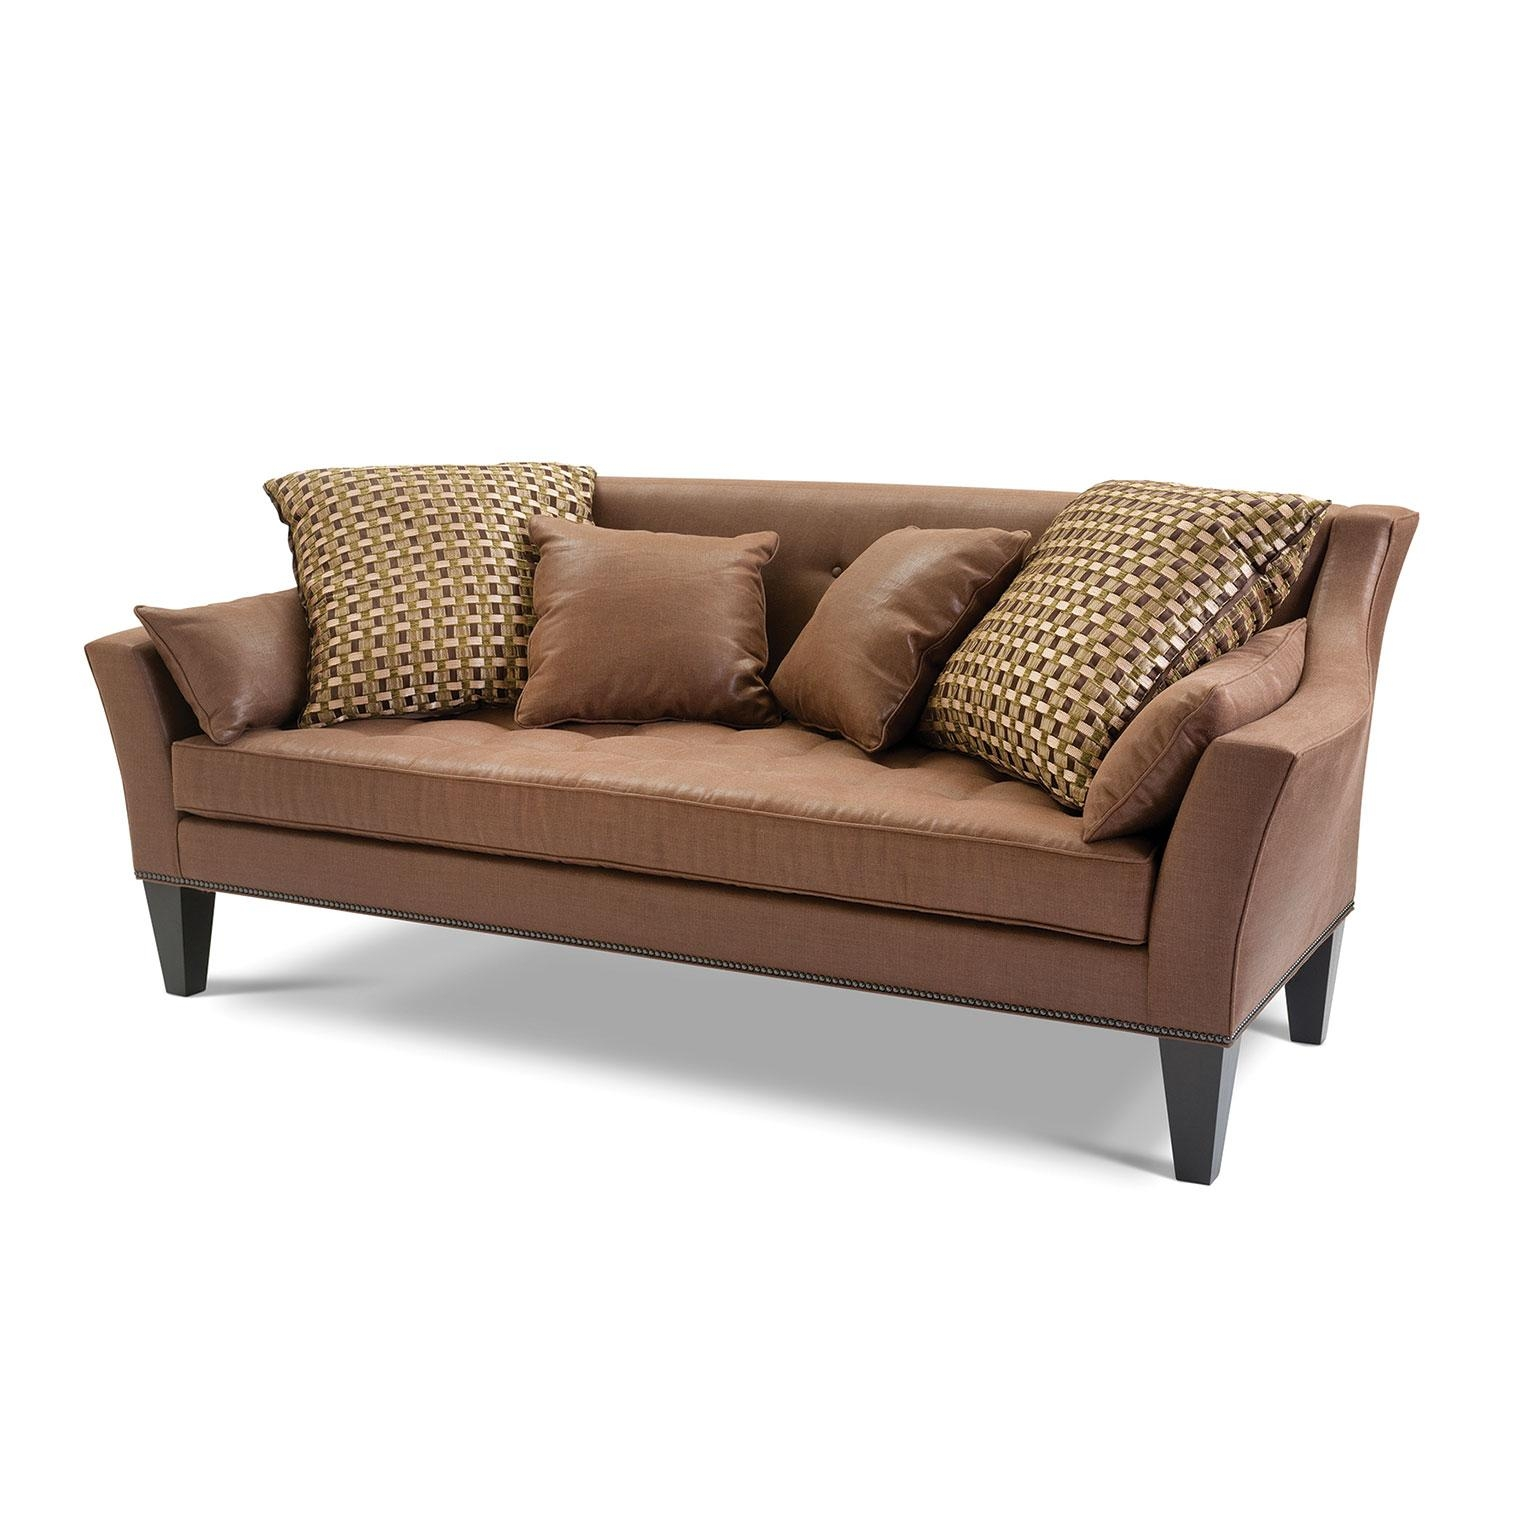 Allan Knightupholstery | Sofas And Sectionals | Palm Beach Sofa On Regarding Wood Legs Sofas (Image 1 of 23)